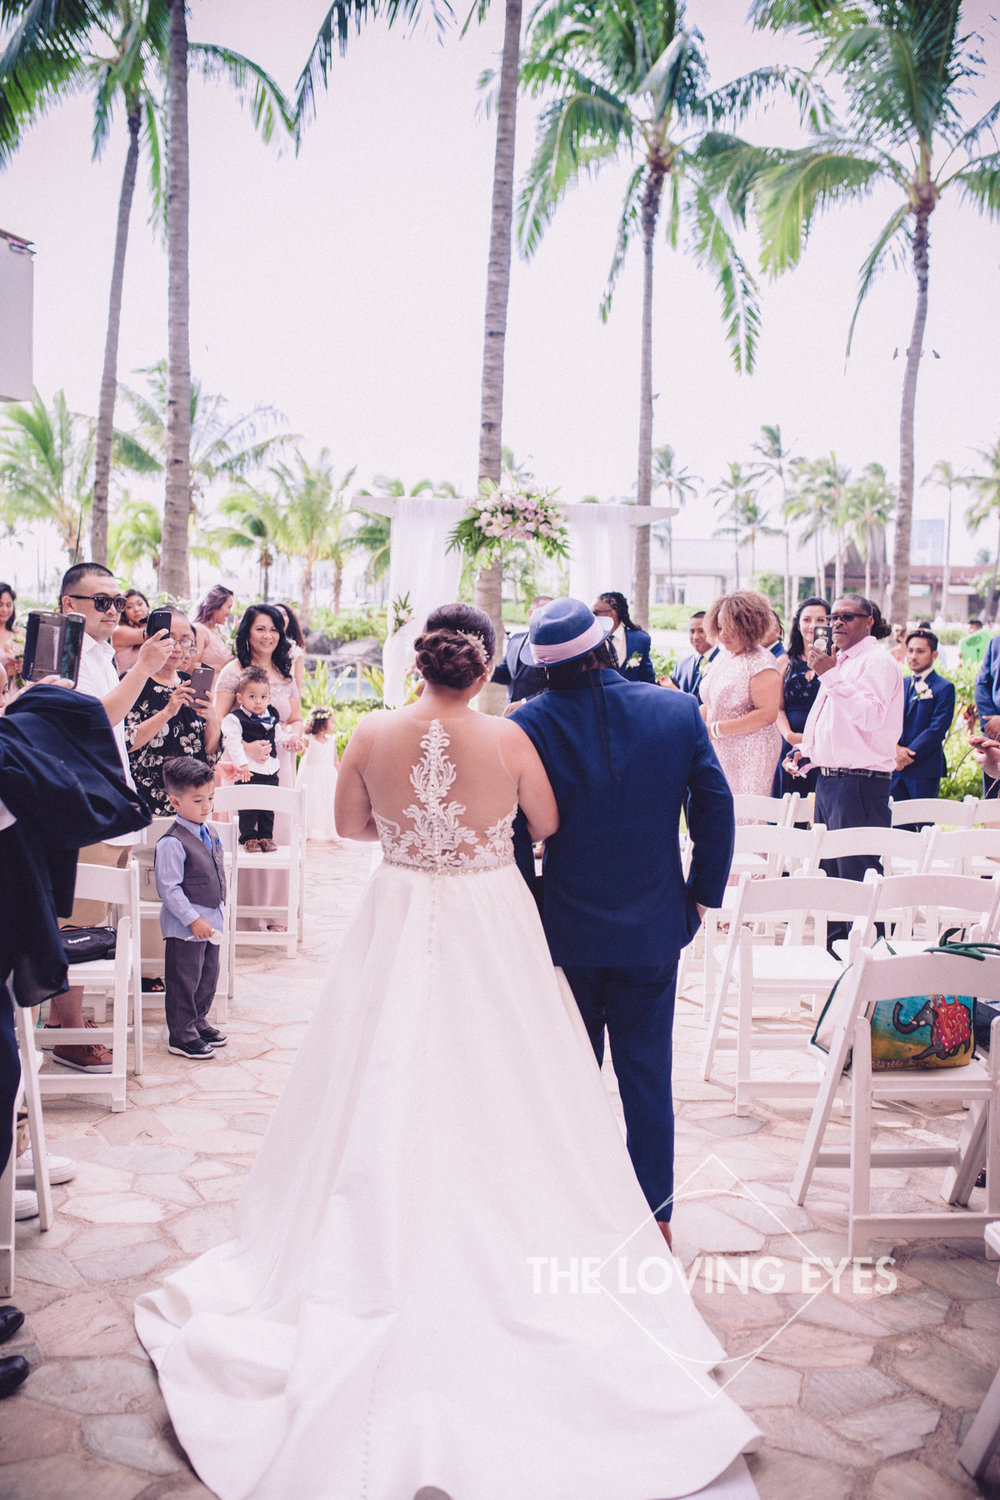 Bride escorted by father during wedding ceremony at Hilton Hawaiian Village Rainbow Suite in Waikiki